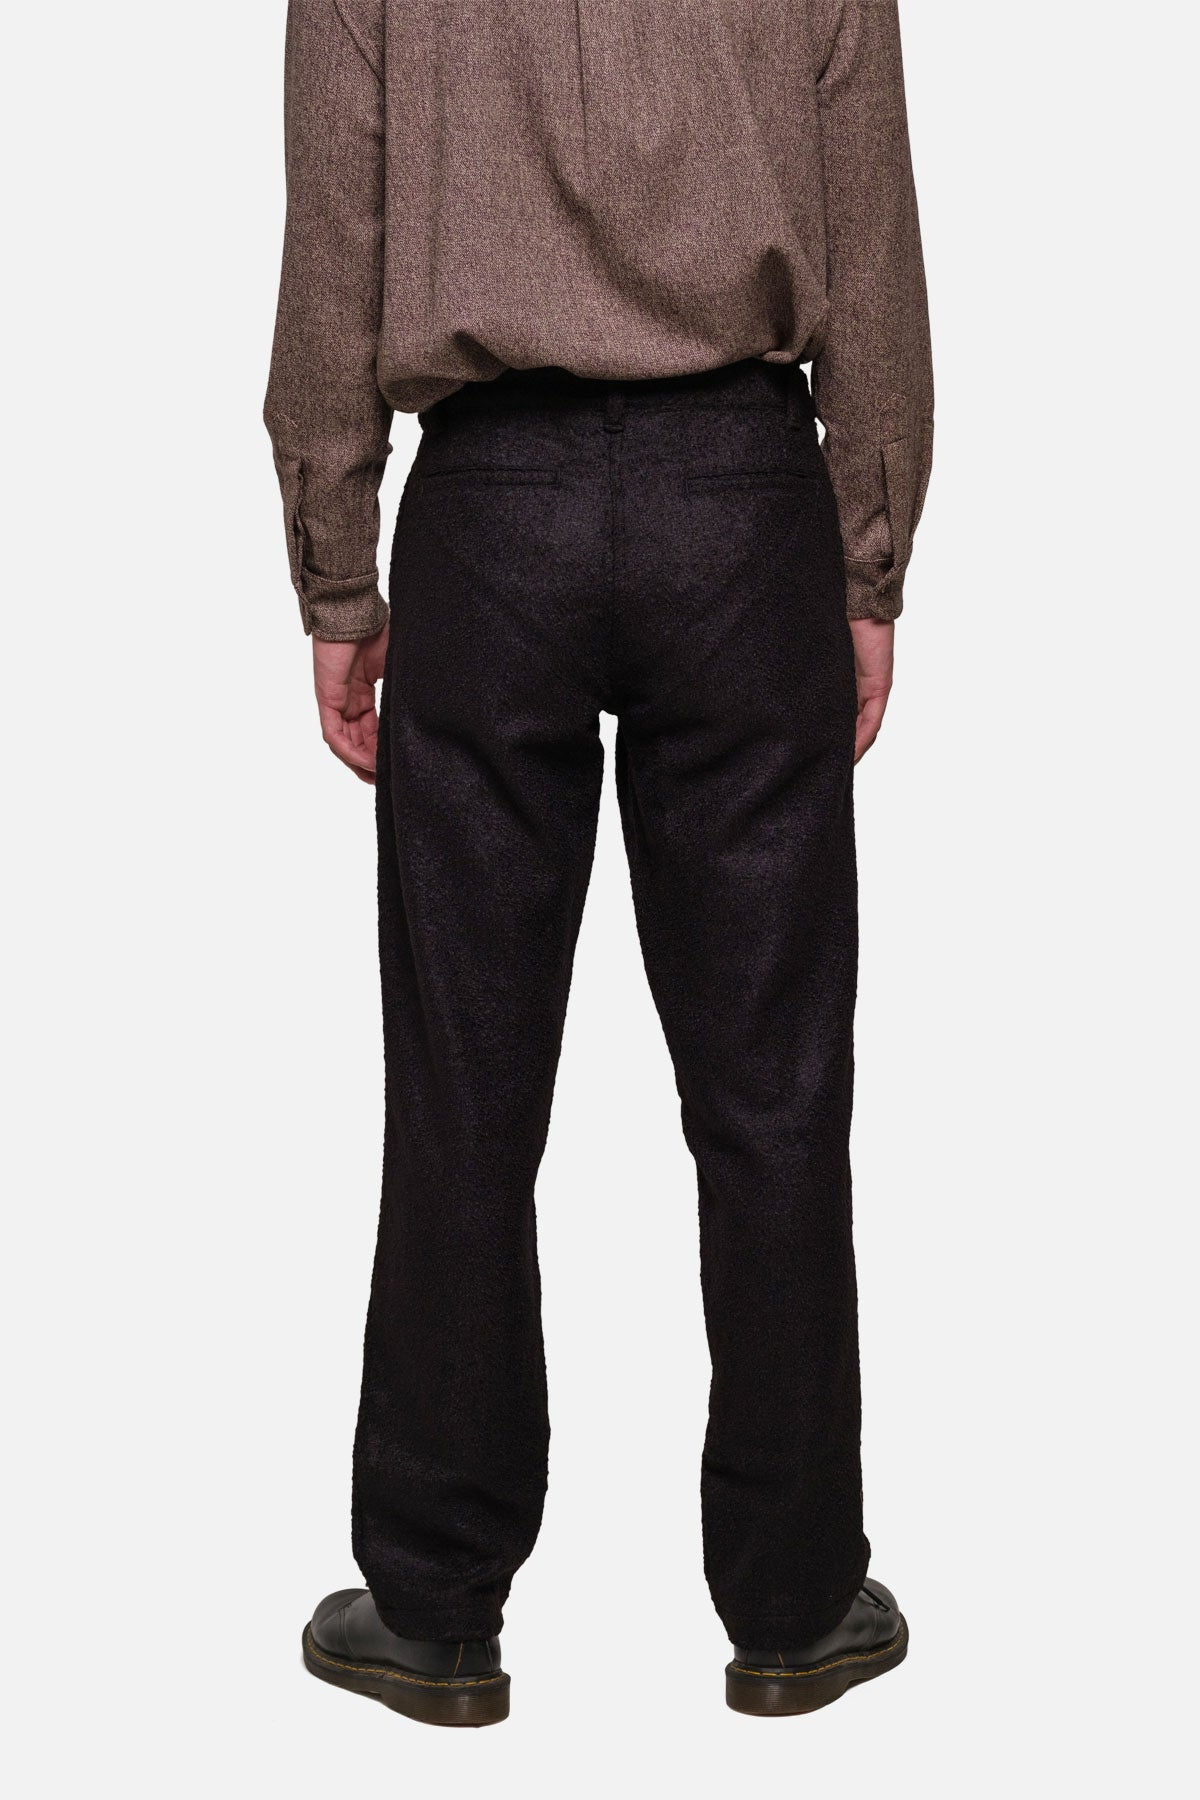 SINGLE PLEAT TROUSERS IN BLACK BOILED WOOL - Fortune Goods